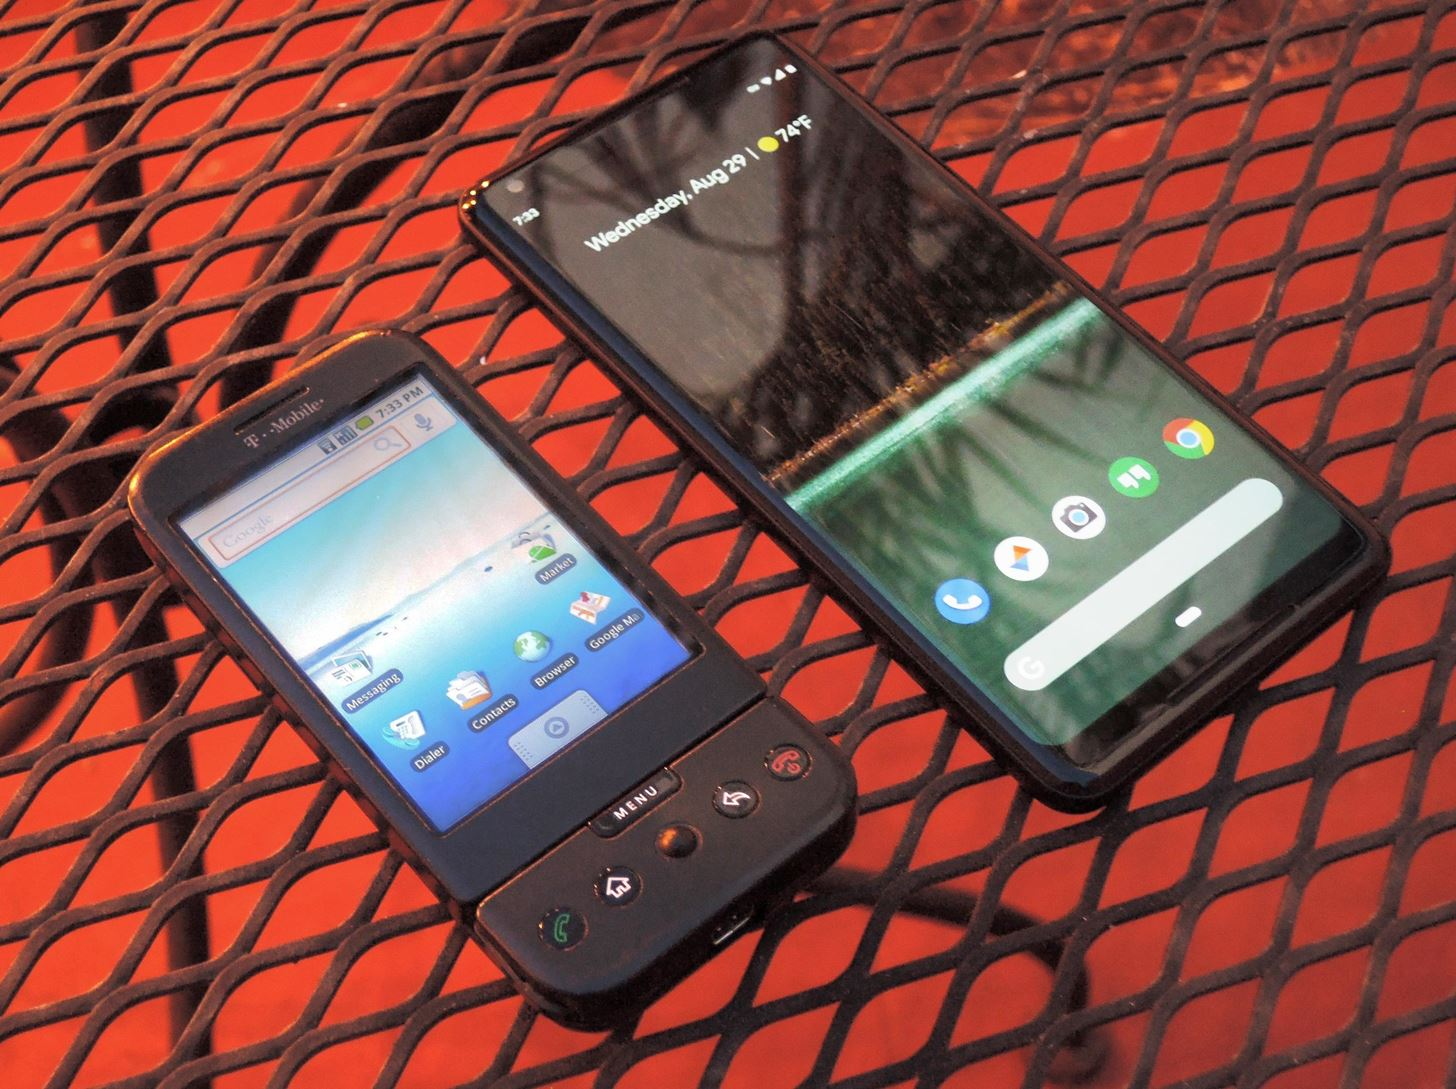 Hands-on with the world's first Android phone - What a difference a decade makes